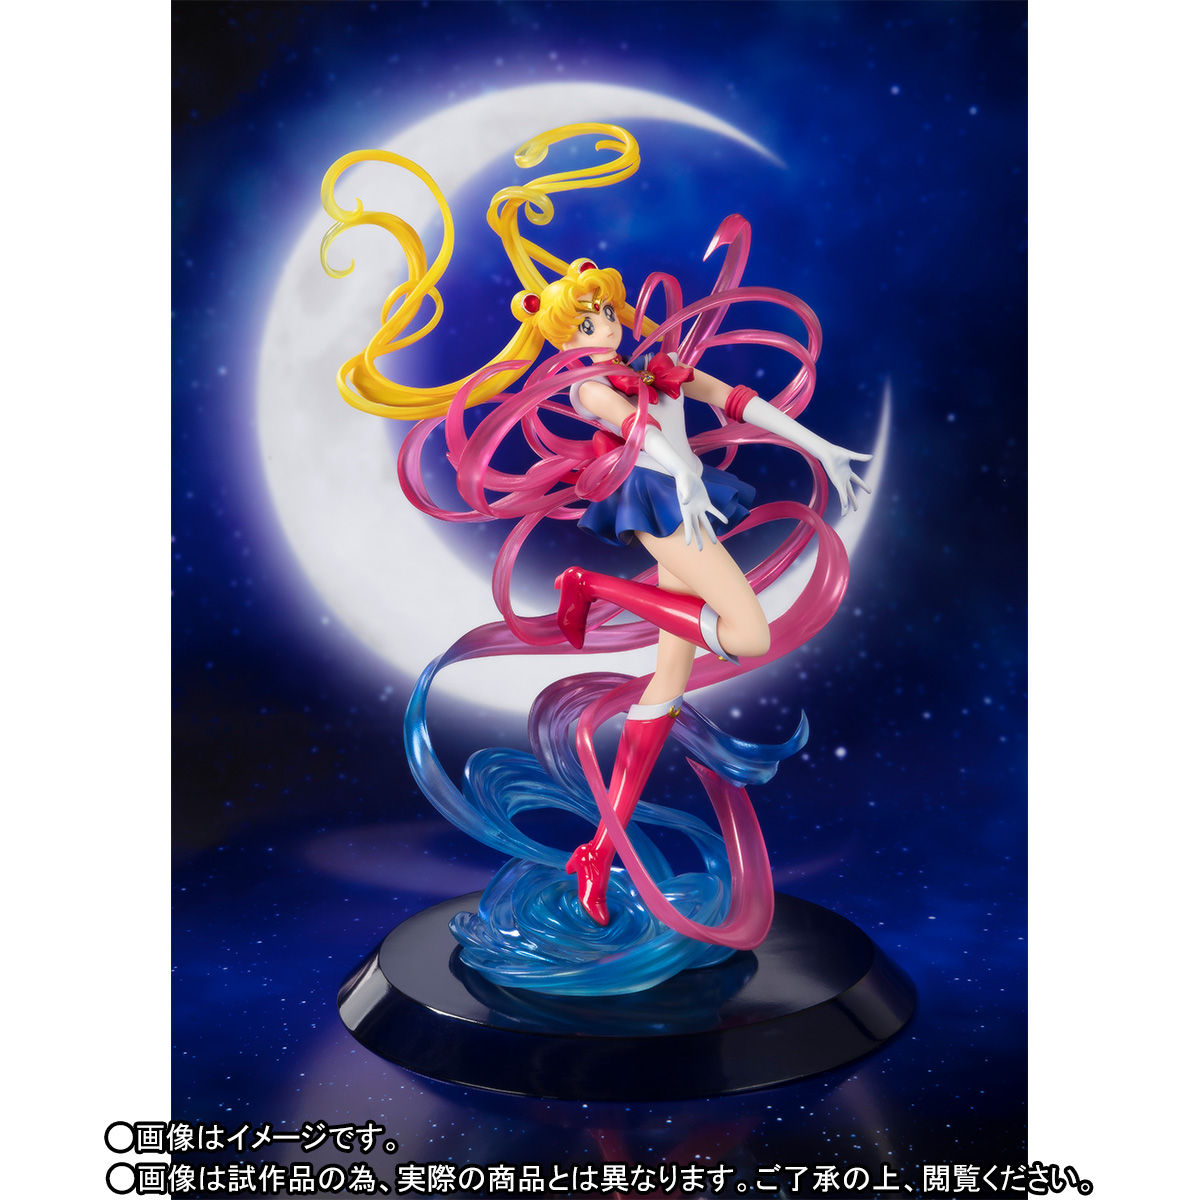 Figuarts Zero chouette『セーラームーン -Moon Crystal Power, Make Up-』完成品フィギュア-002